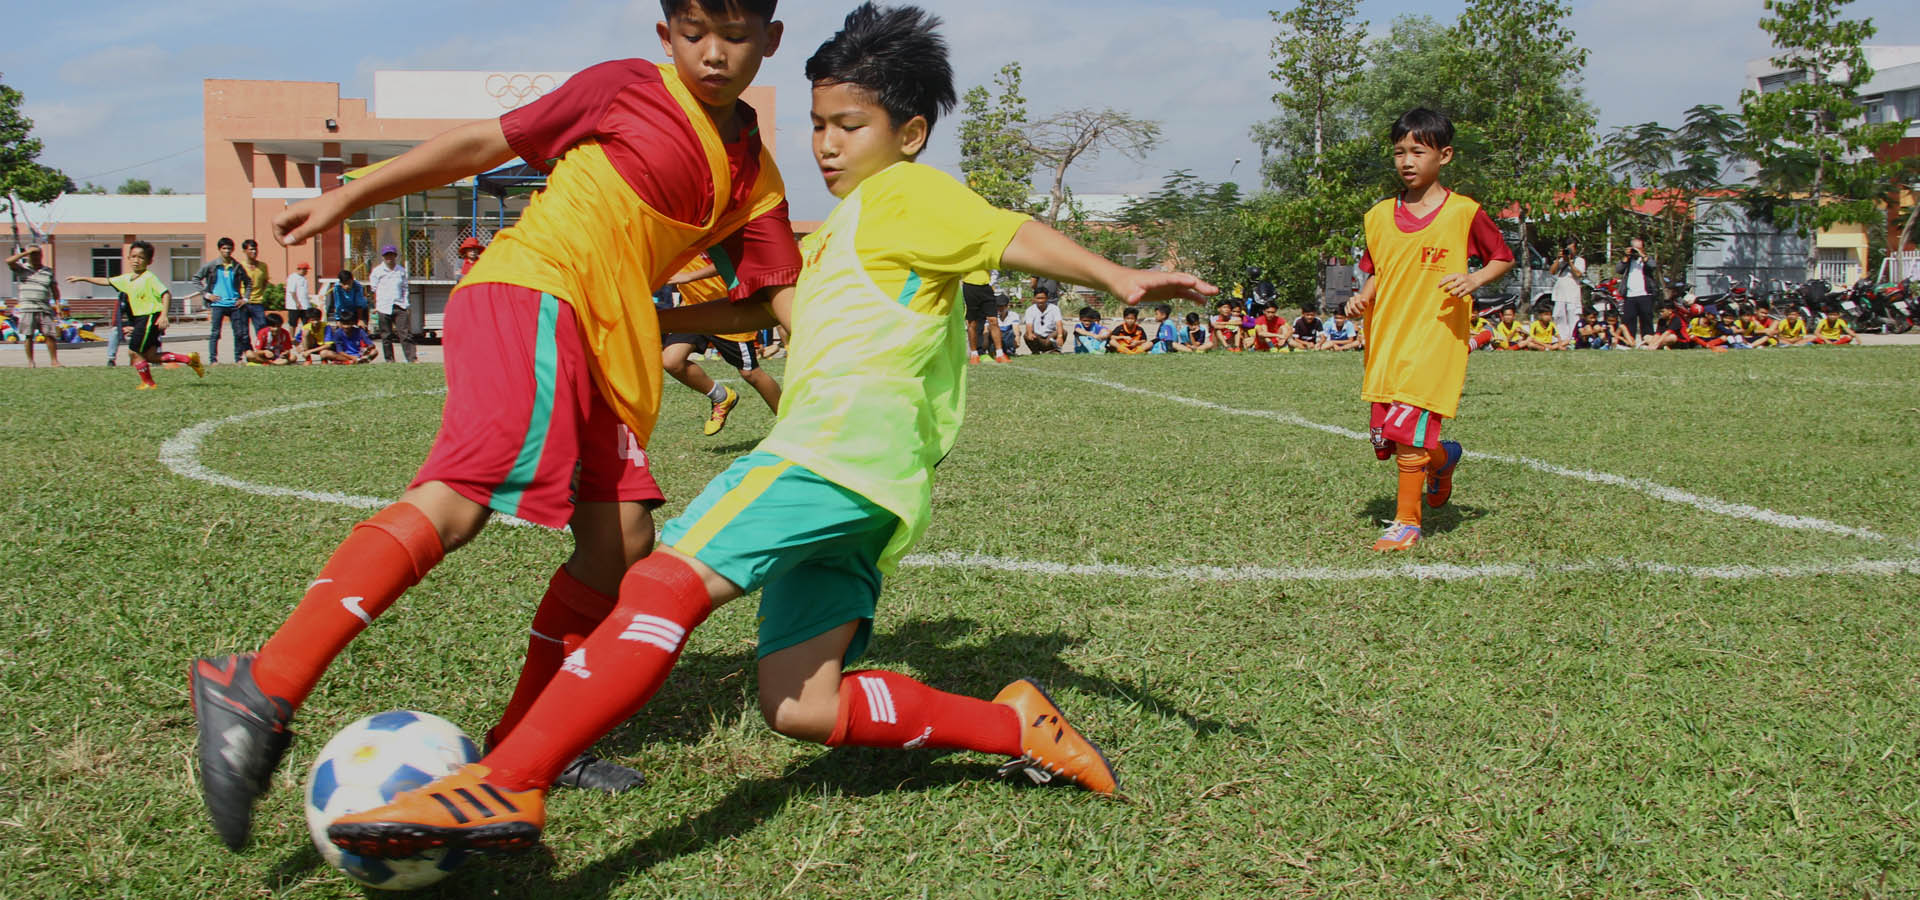 OF VIETNAMESE FOOTBALL TALENTS